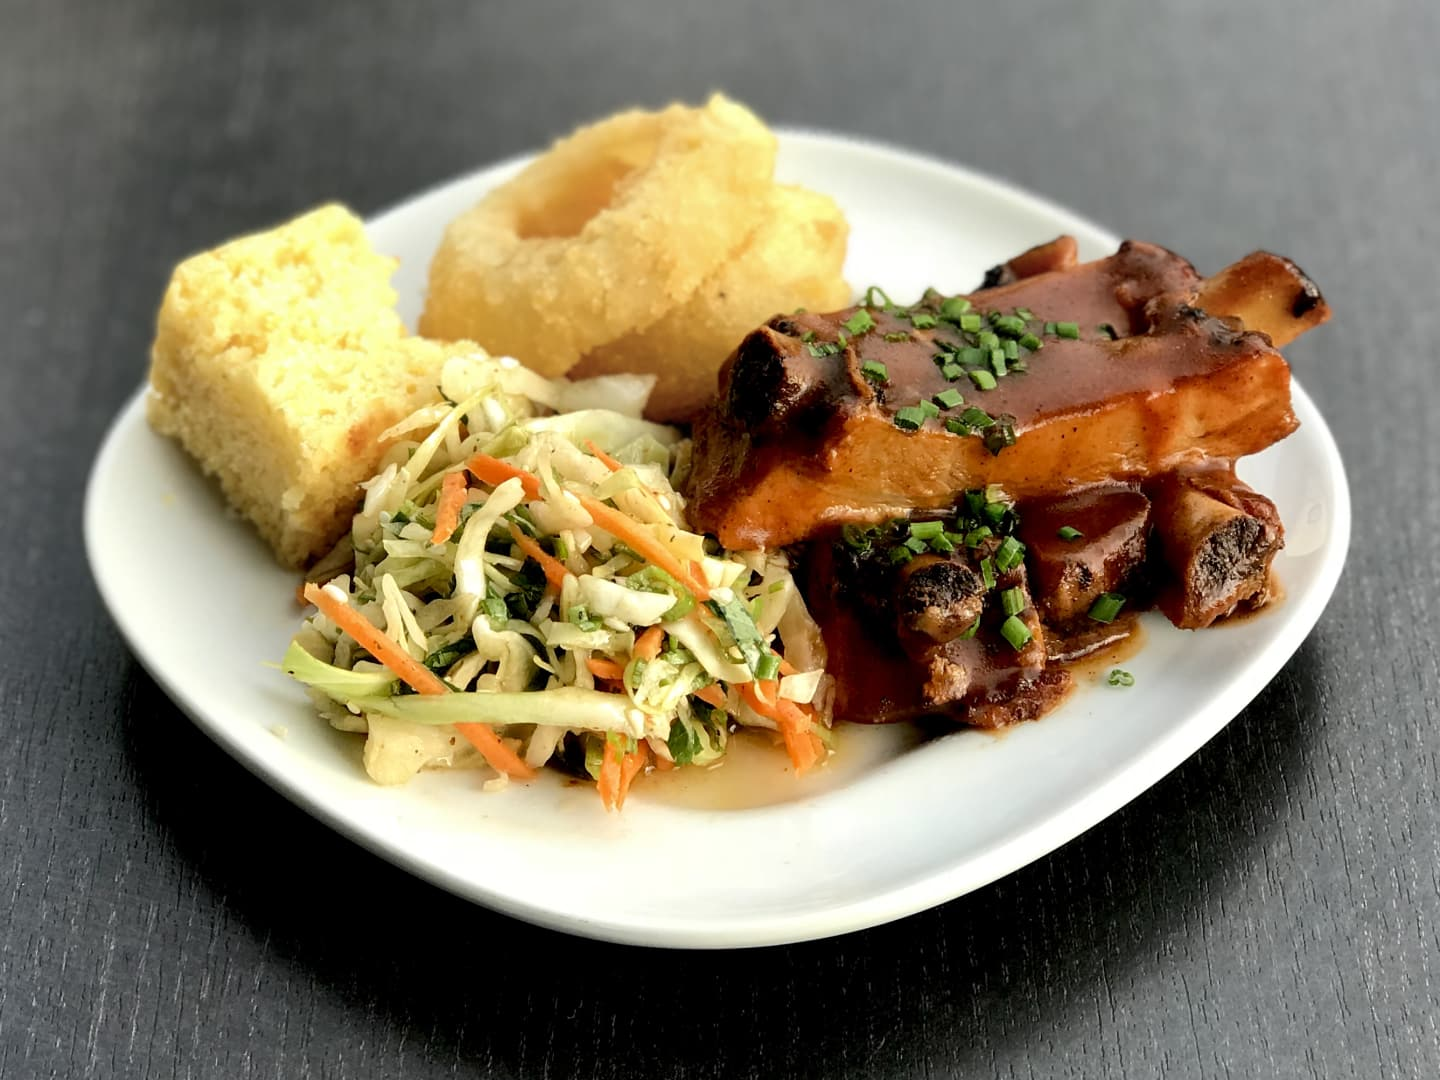 Bloody Mary Braised Ribs w/ Fried Onions, Cornbread & Sesame Peanut Coleslaw